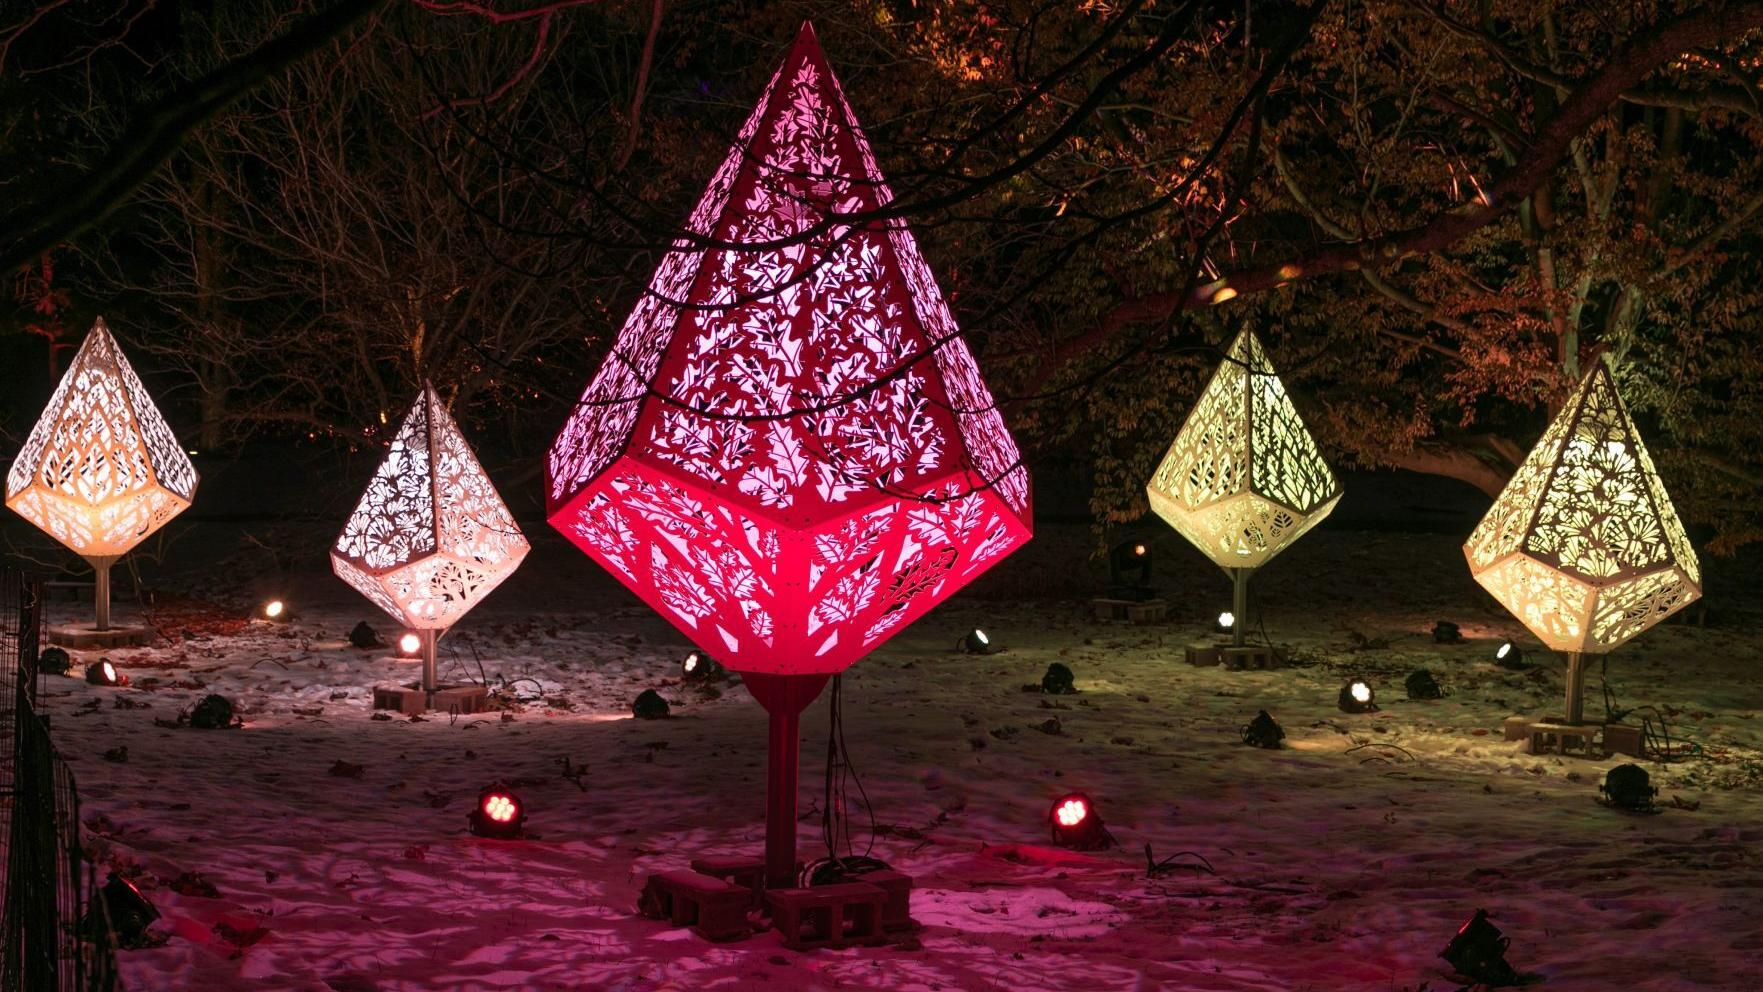 Morton Arboretum reimagines holiday lights display as driving trail